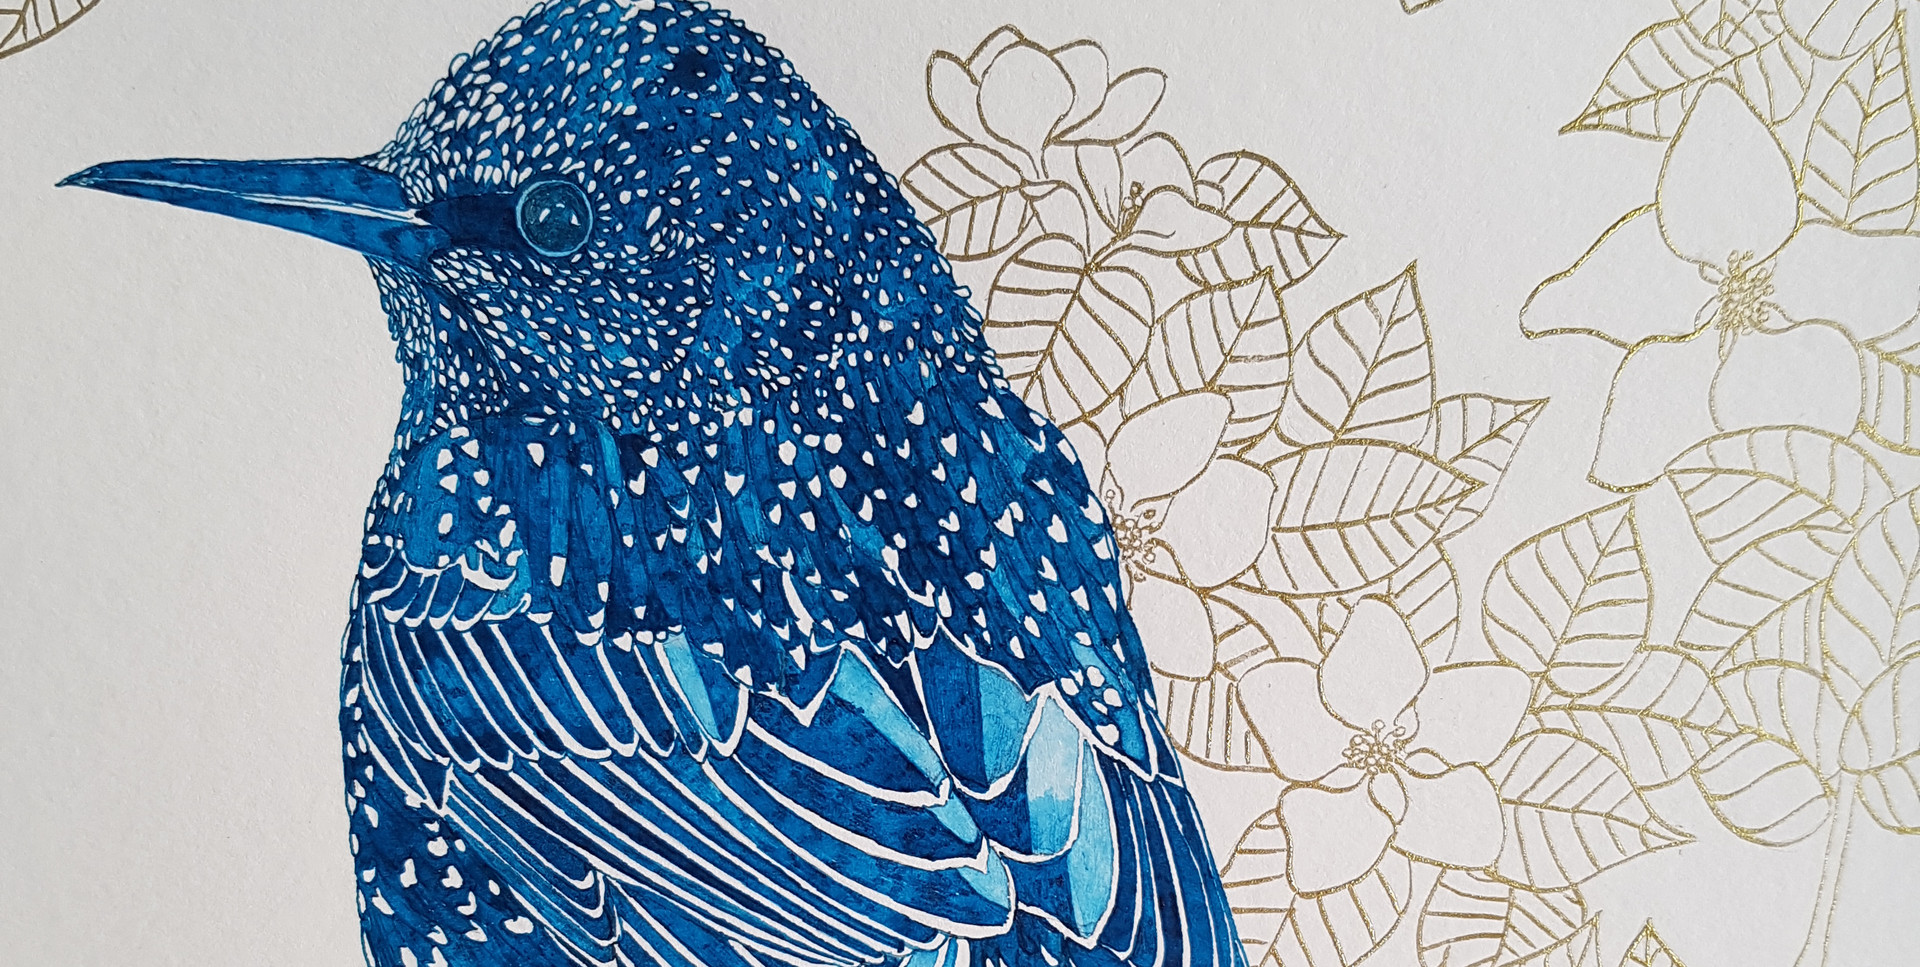 Starling Pen and Ink Drawing by Howell Illustration